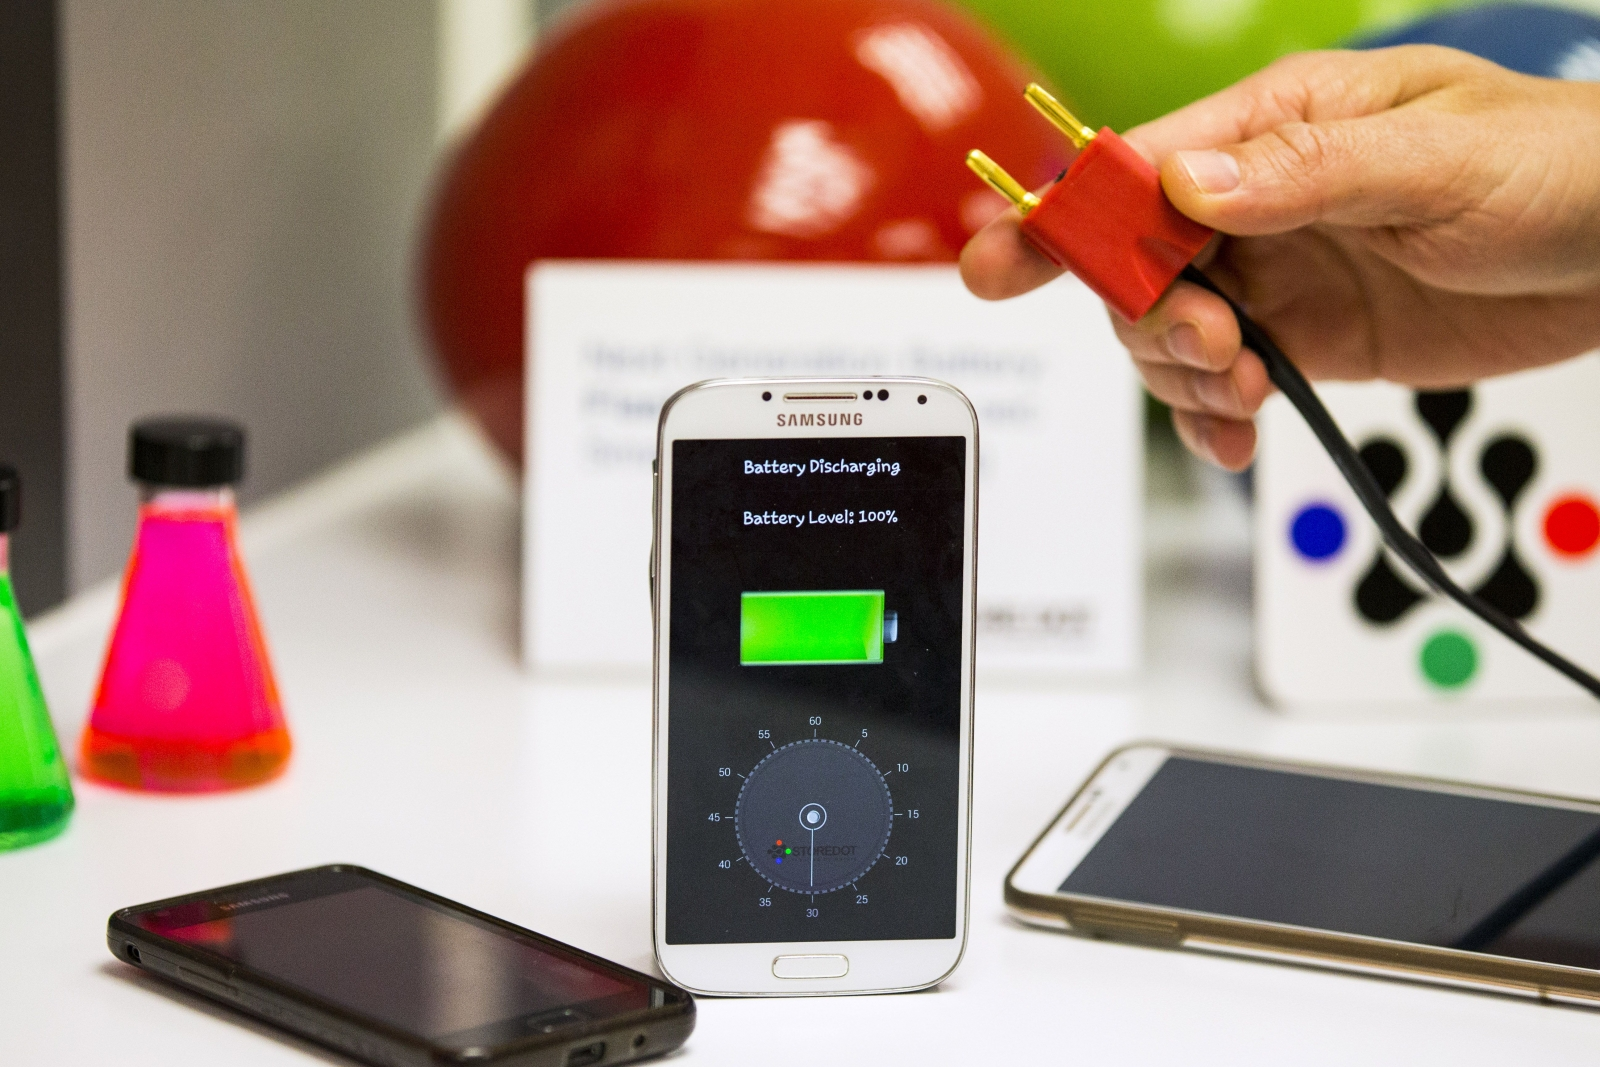 Smartphones with lithium-ion batteries